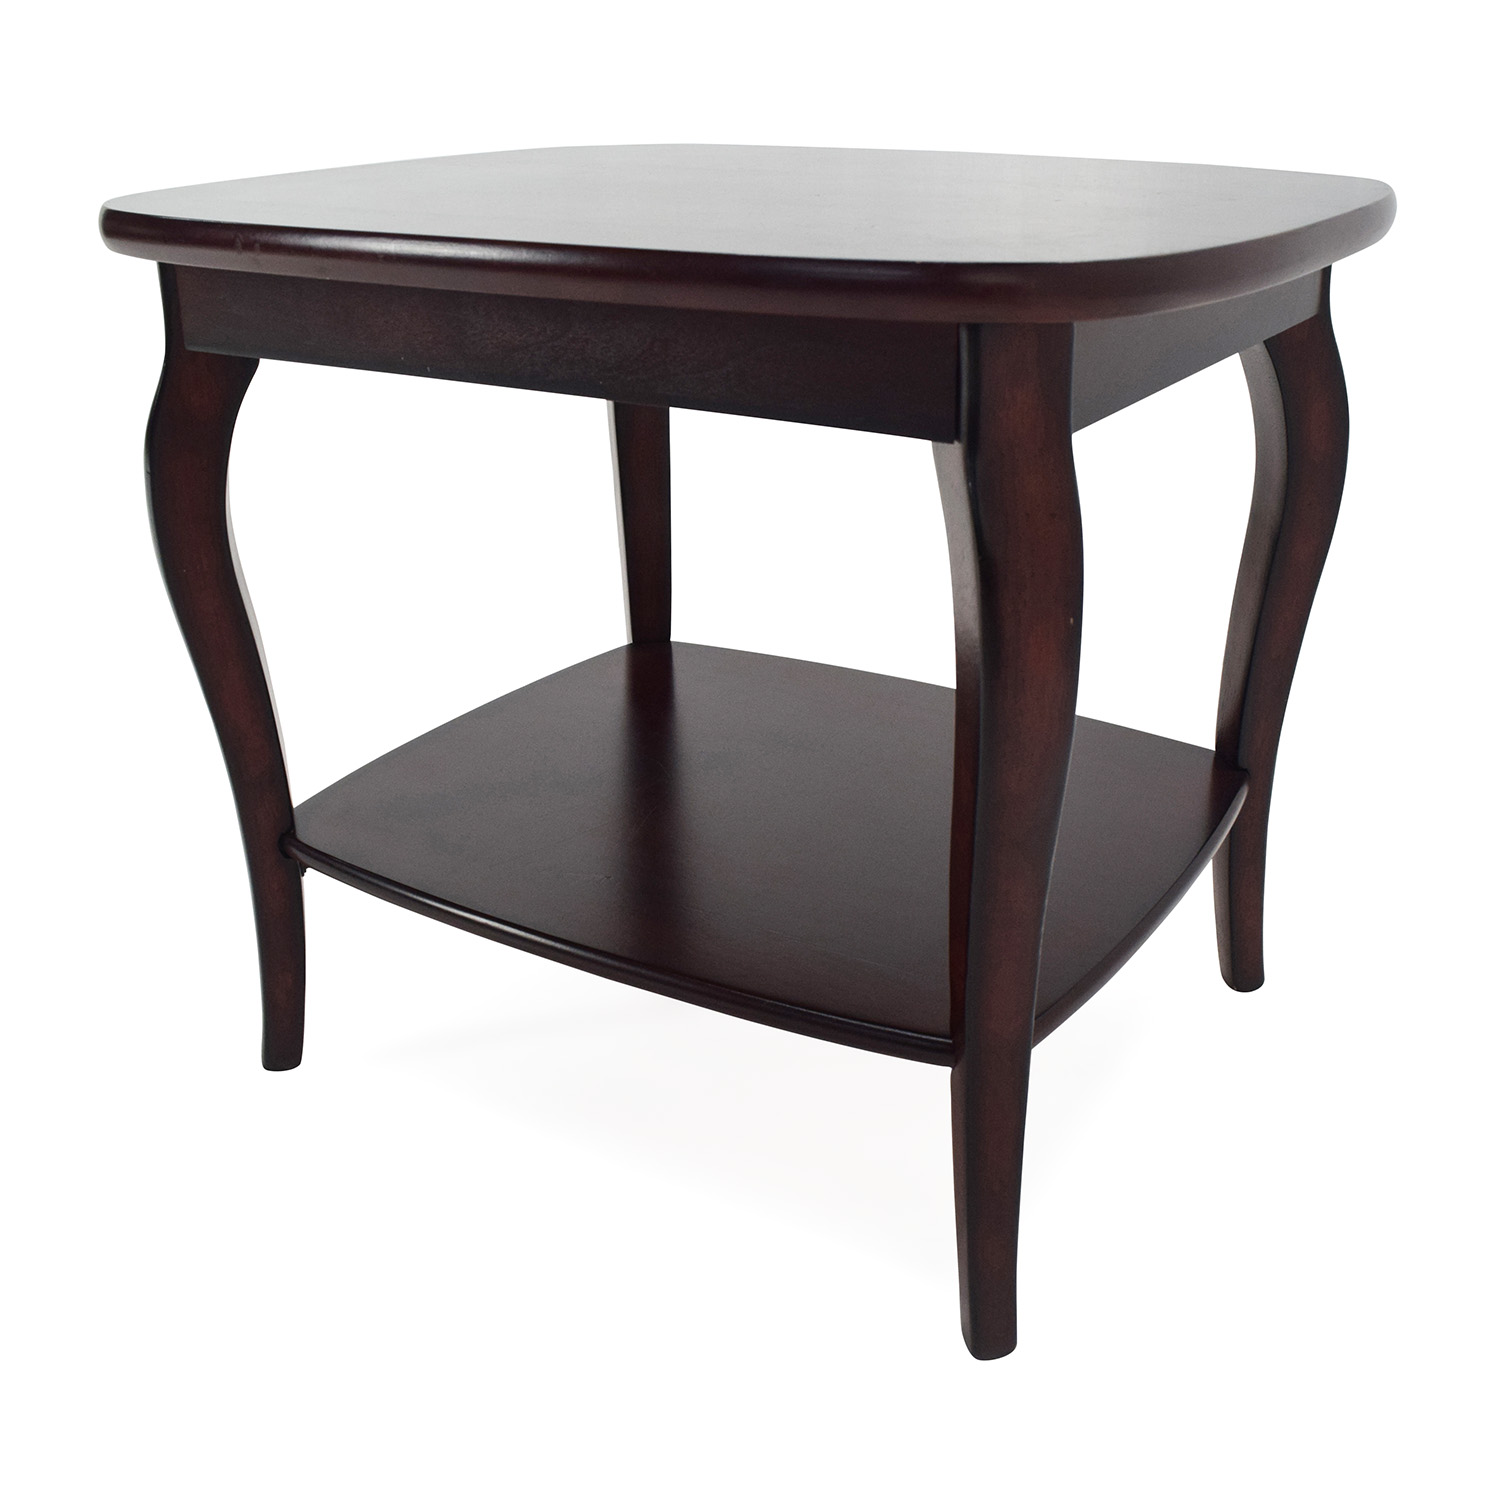 Buy Side Table 50 Off Raymour And Flanigan Raymour And Flanigan Side Table